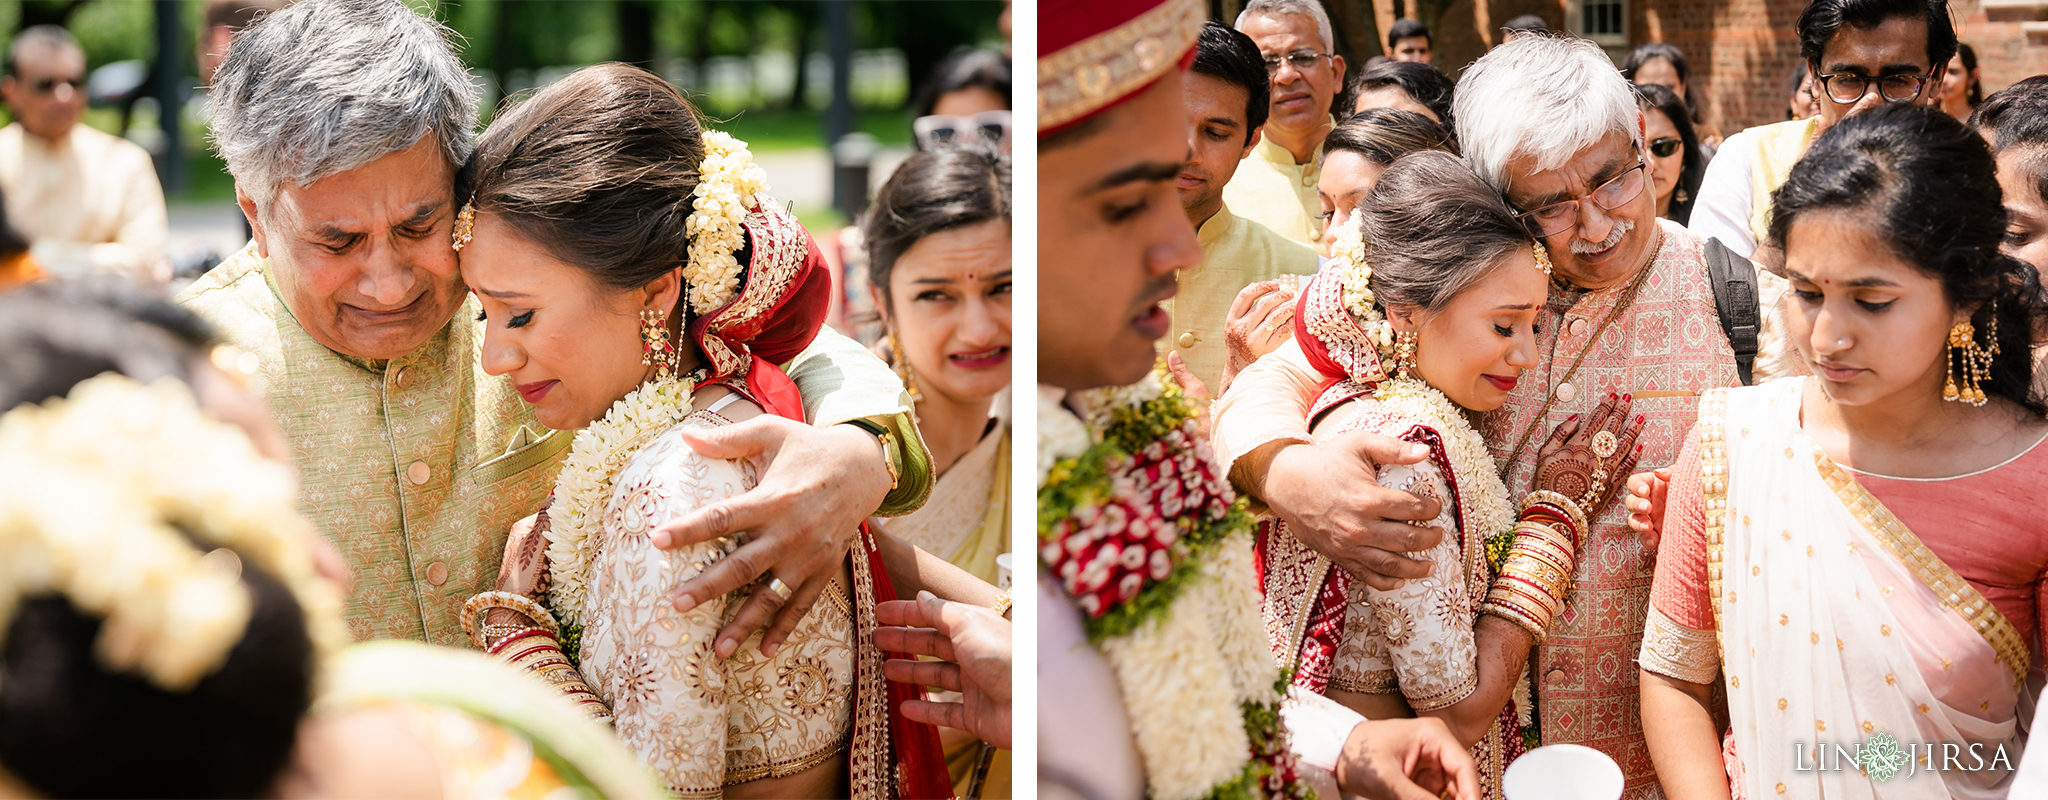 24 New Albany Country Club Ohio Indian Wedding Photography